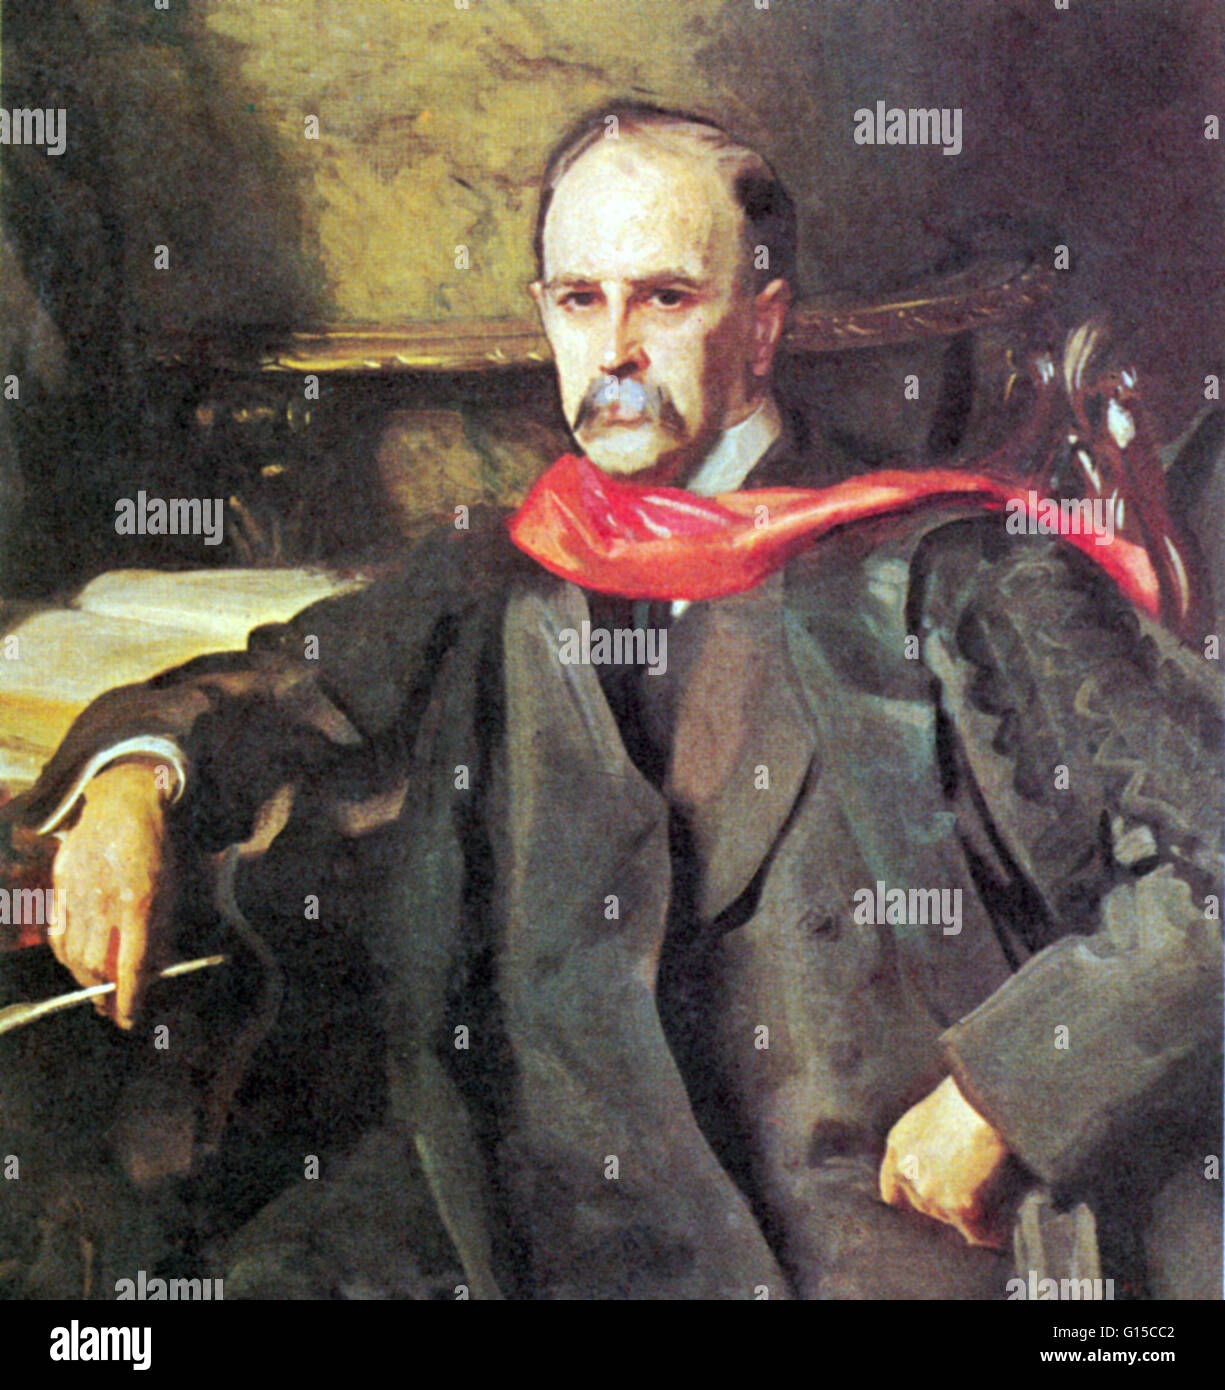 William Osler (1849-1919) was a physician  He was one of the